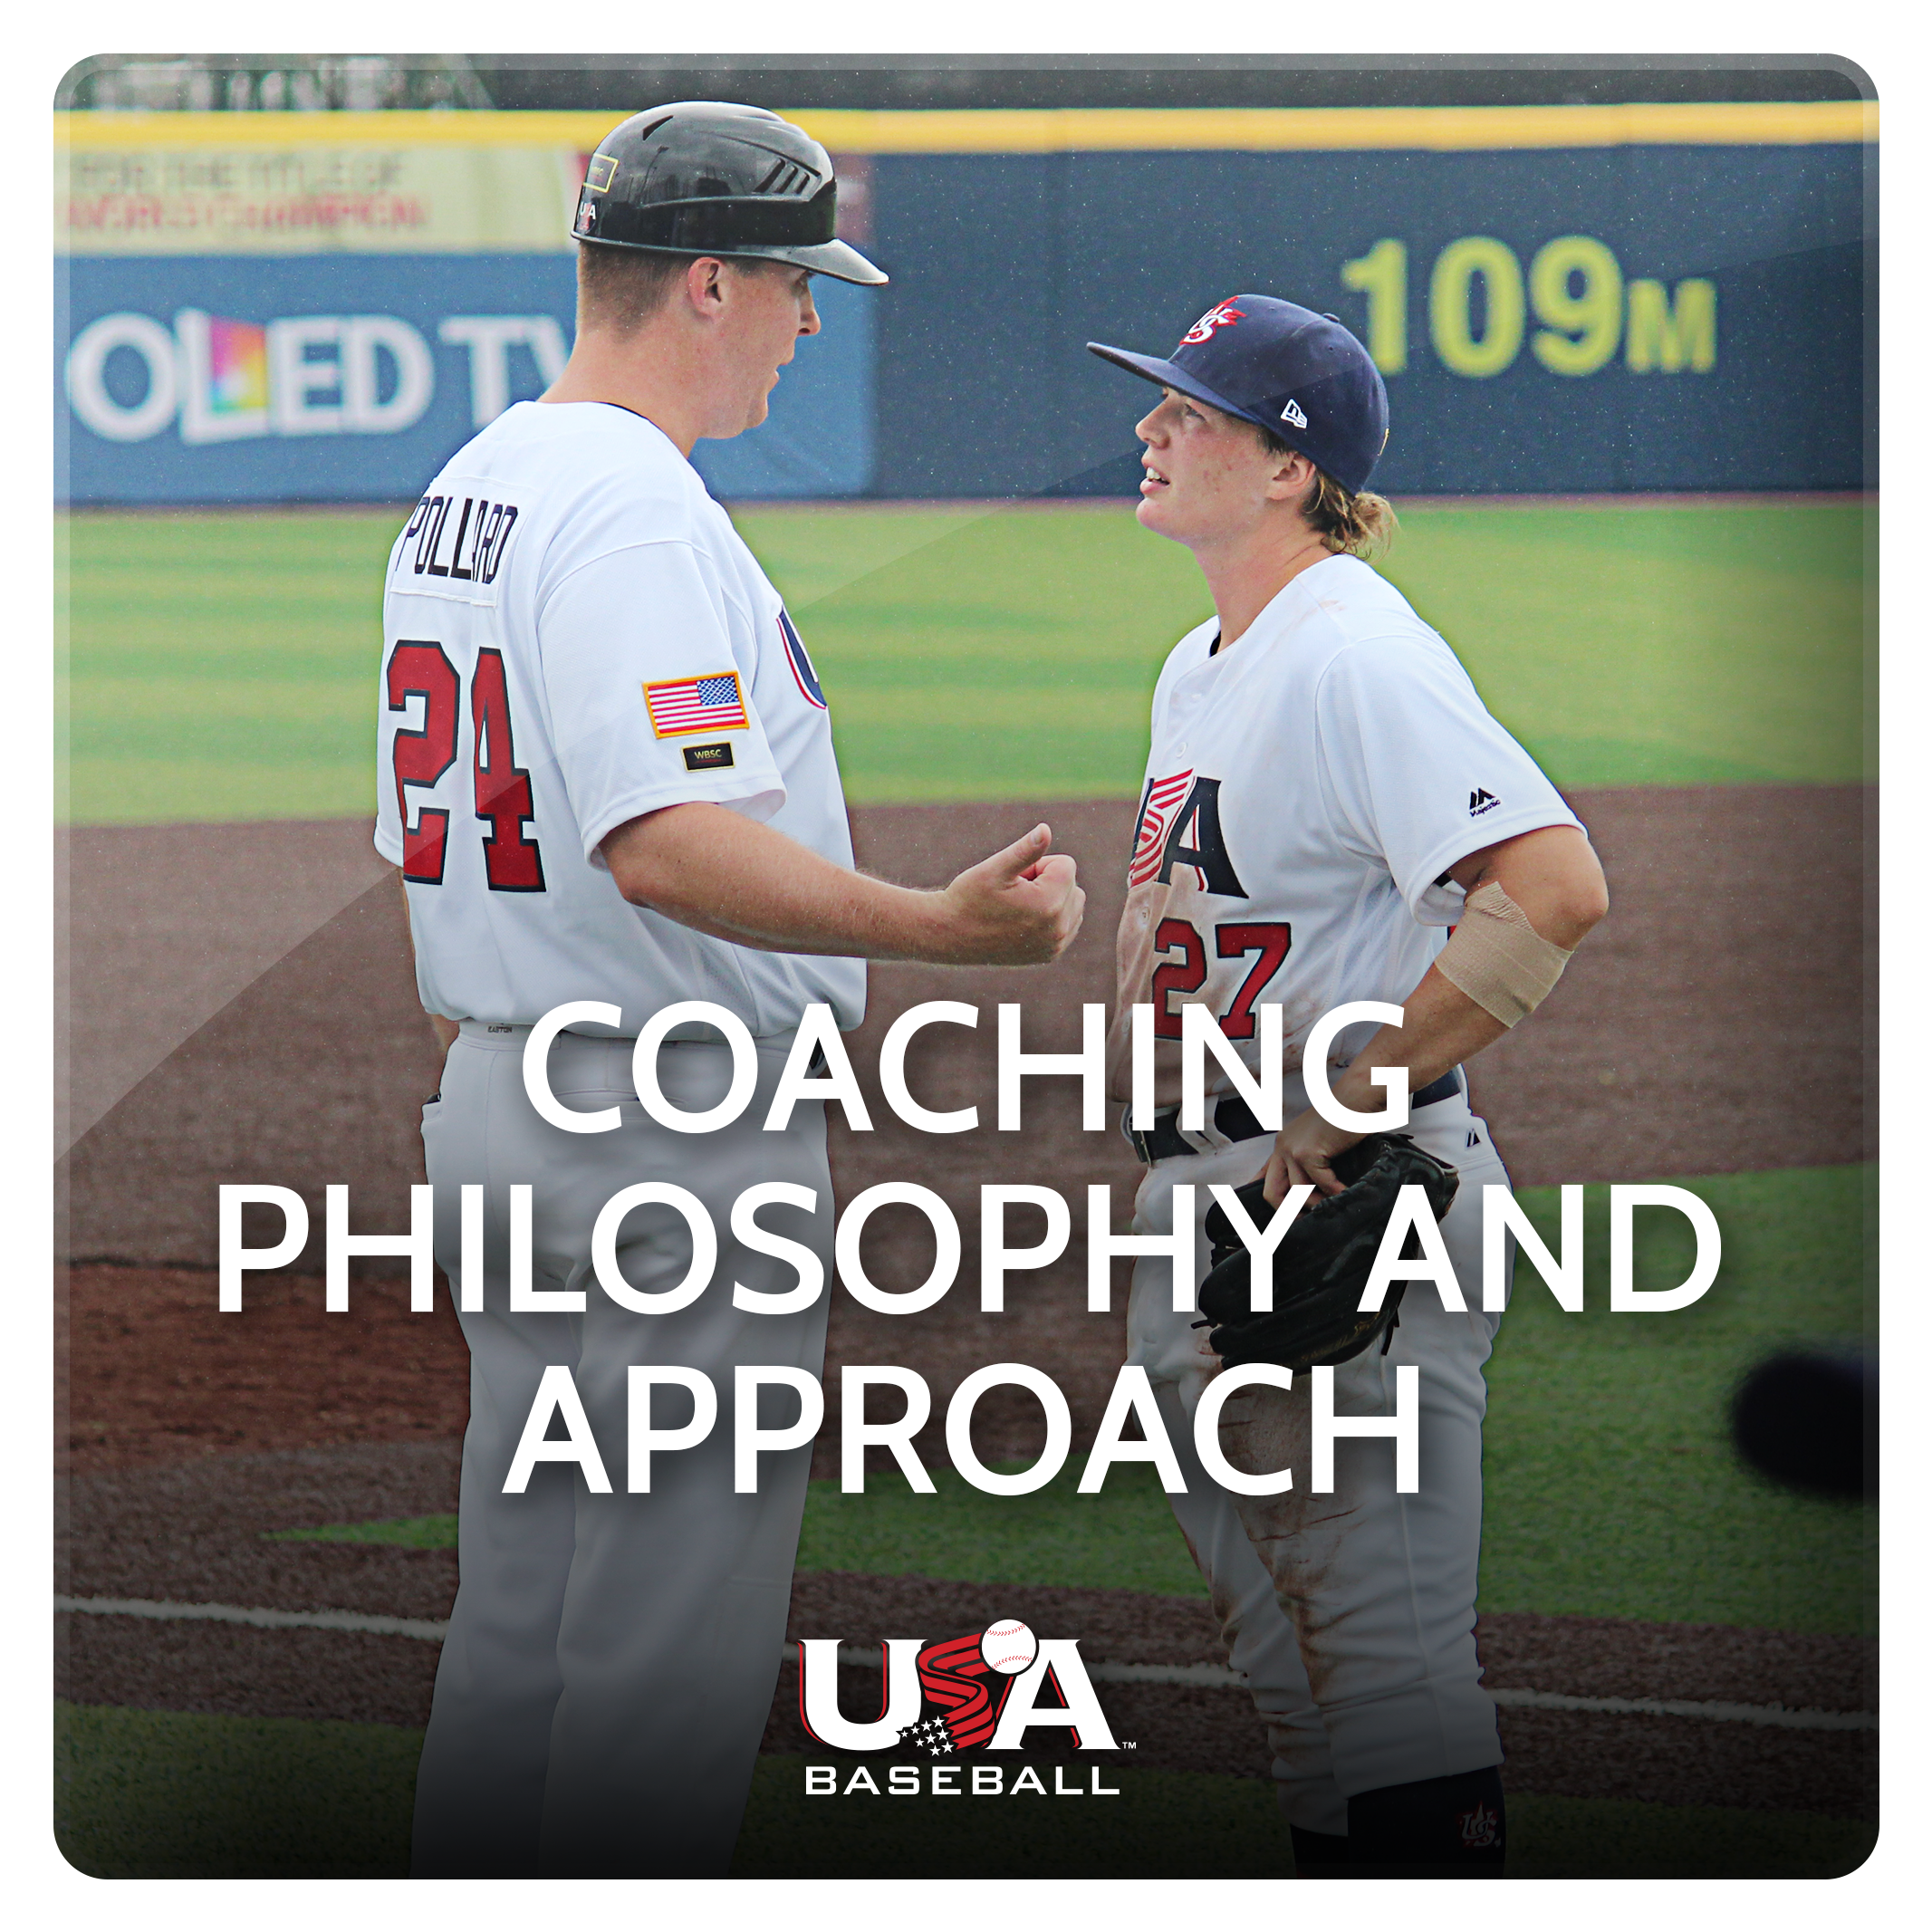 Coaching Philosophy and Approach